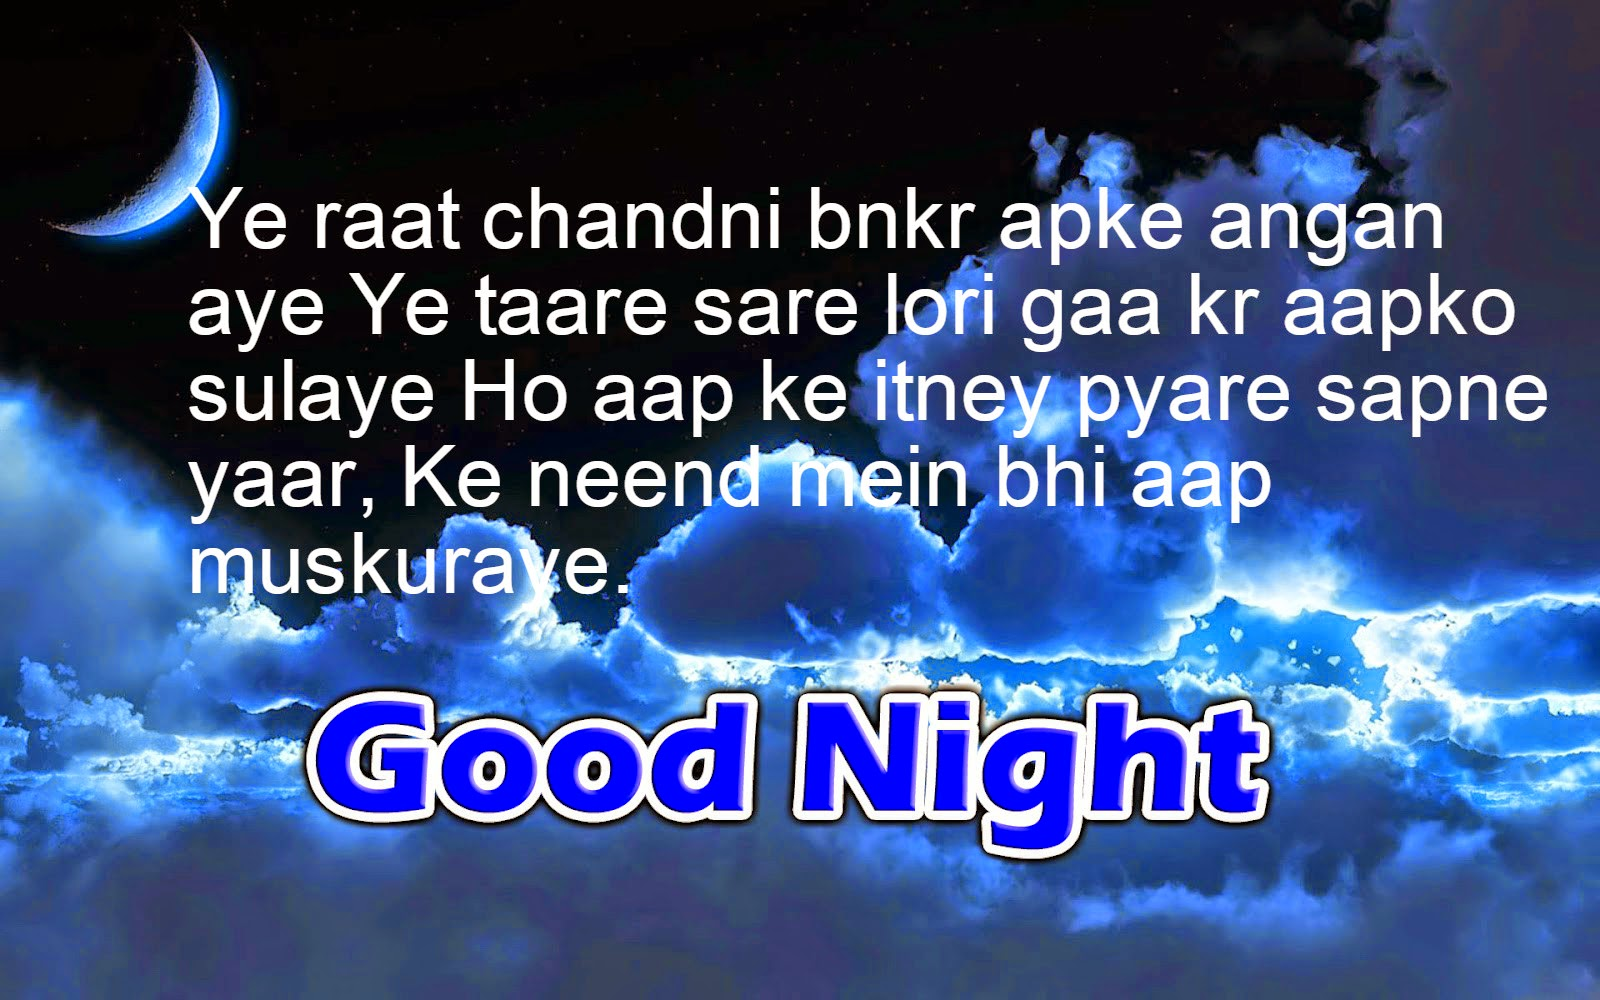 Good Night Quotes In Hindi For Whatsapp And Facebook गड नईट